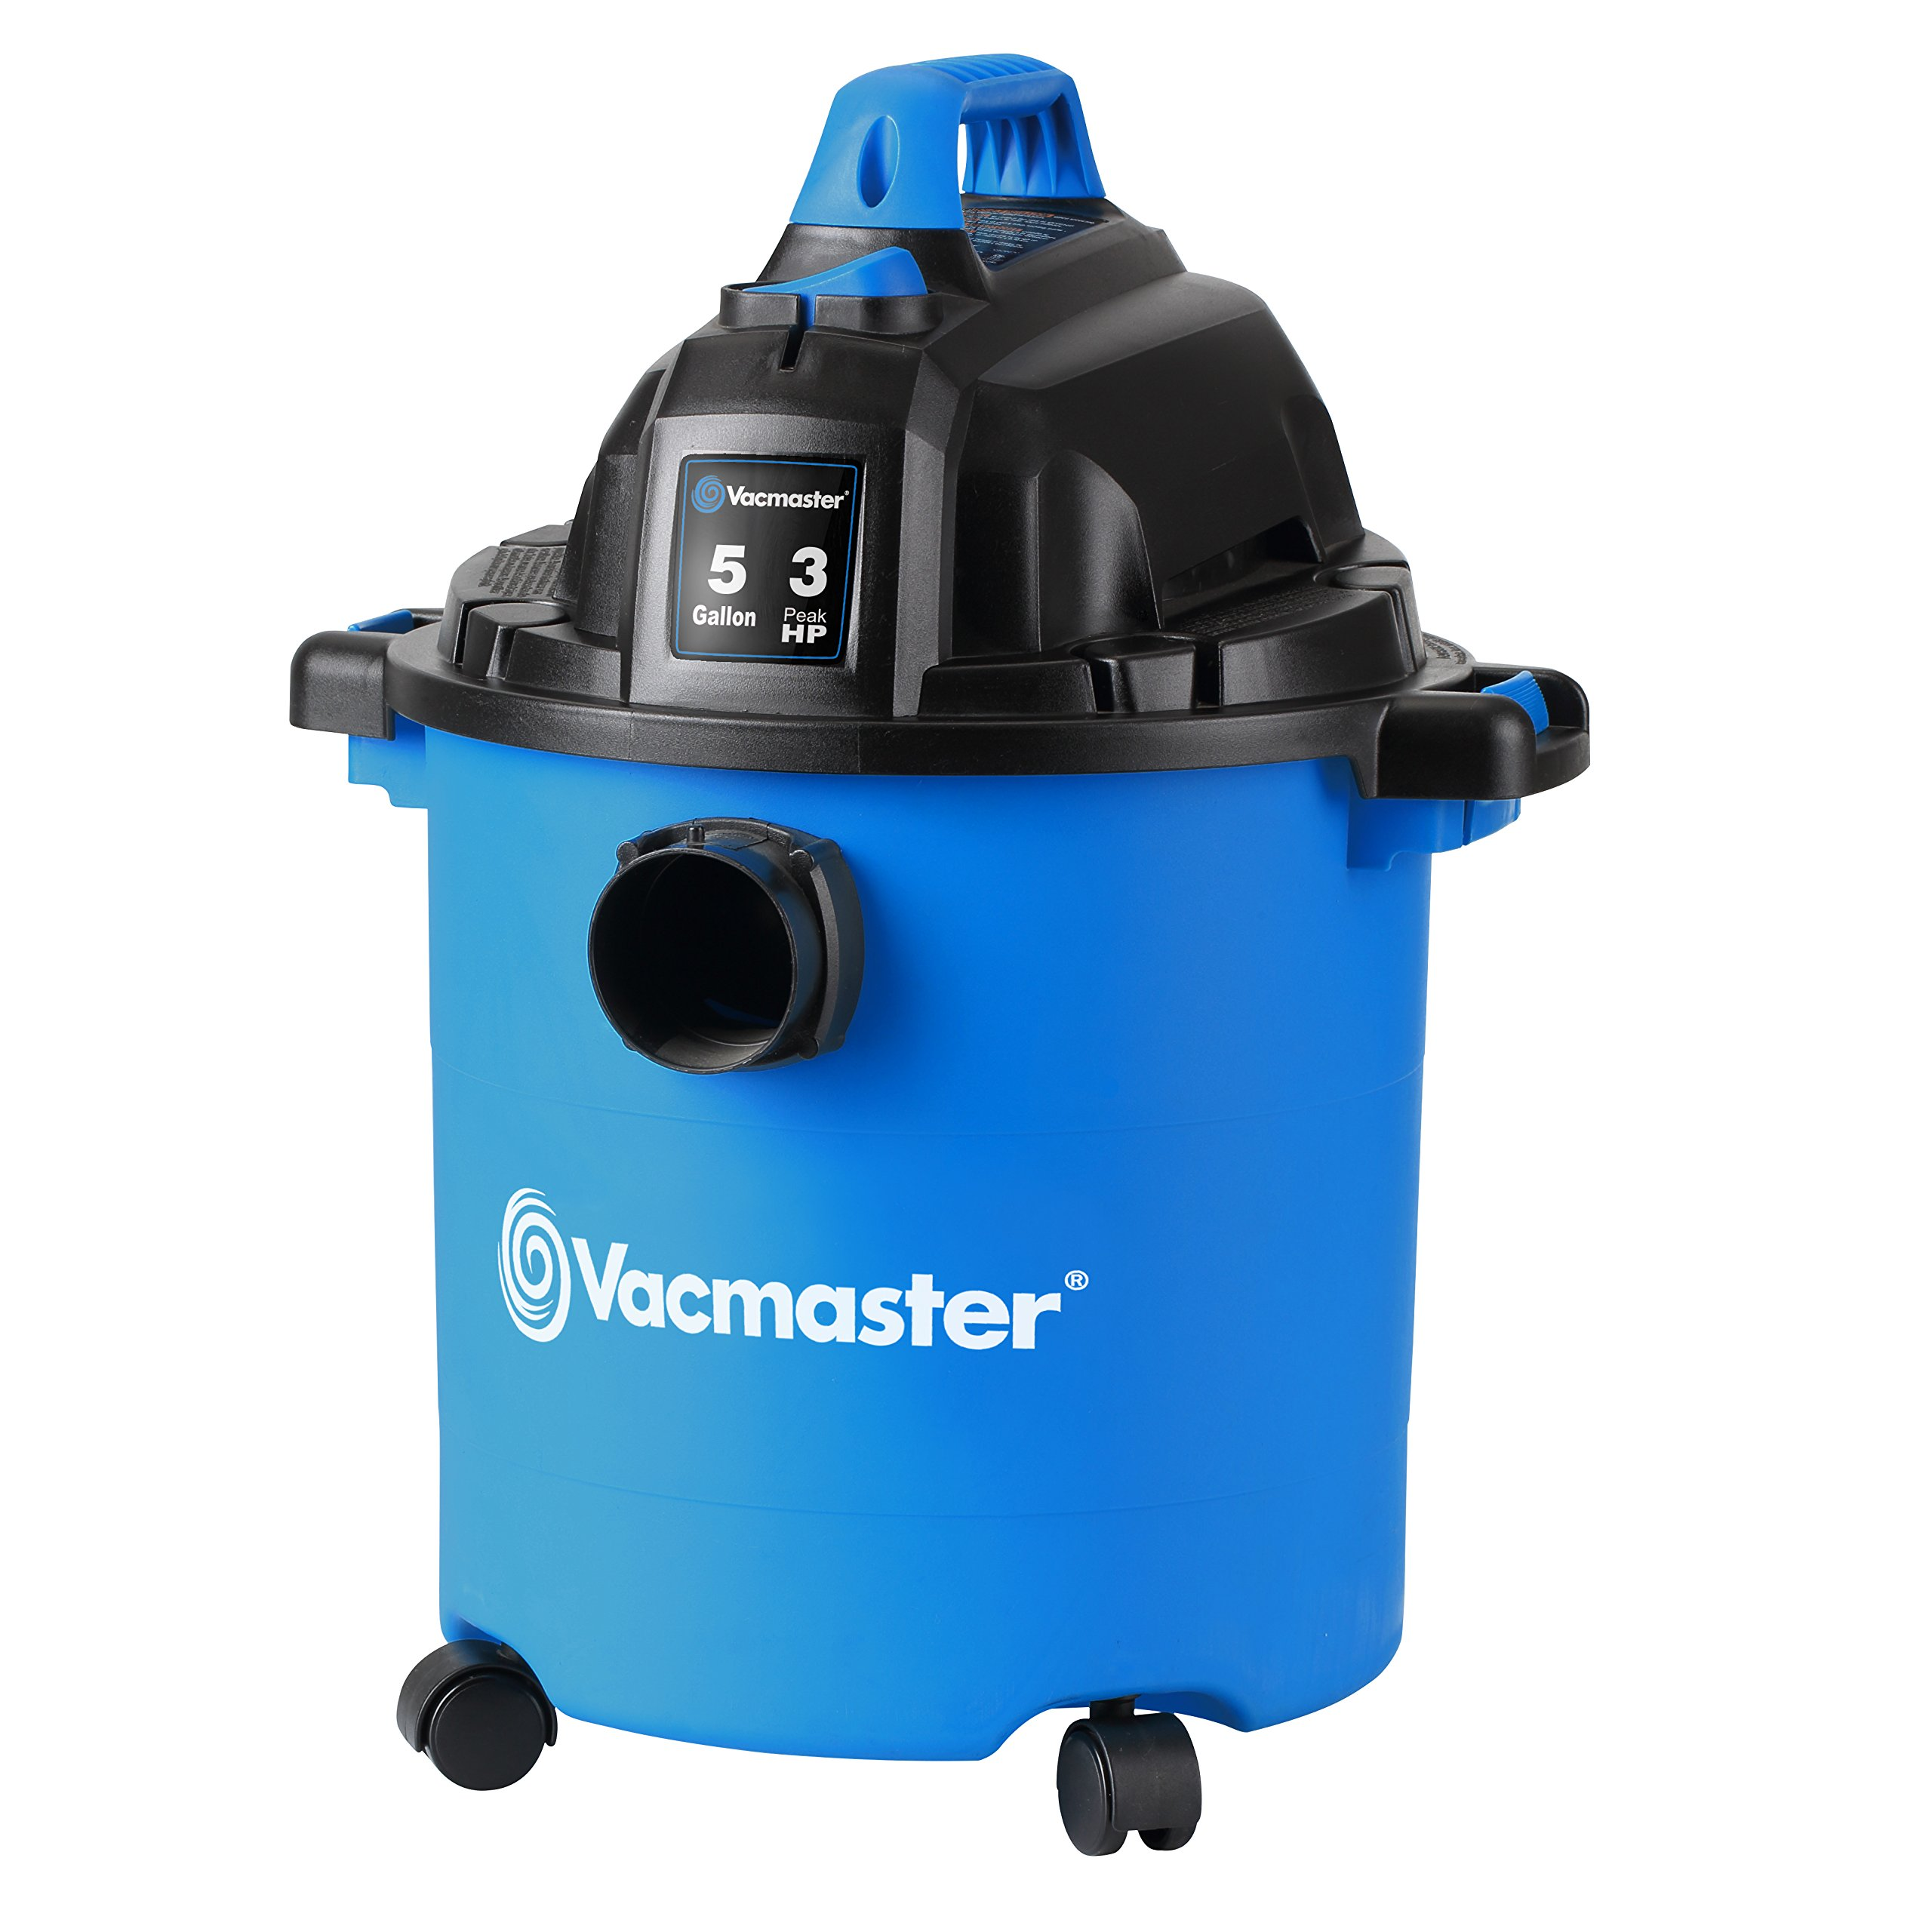 Vacmaster 5 Gallon, 3 Peak HP, Wet/Dry Vacuum, VJC507P